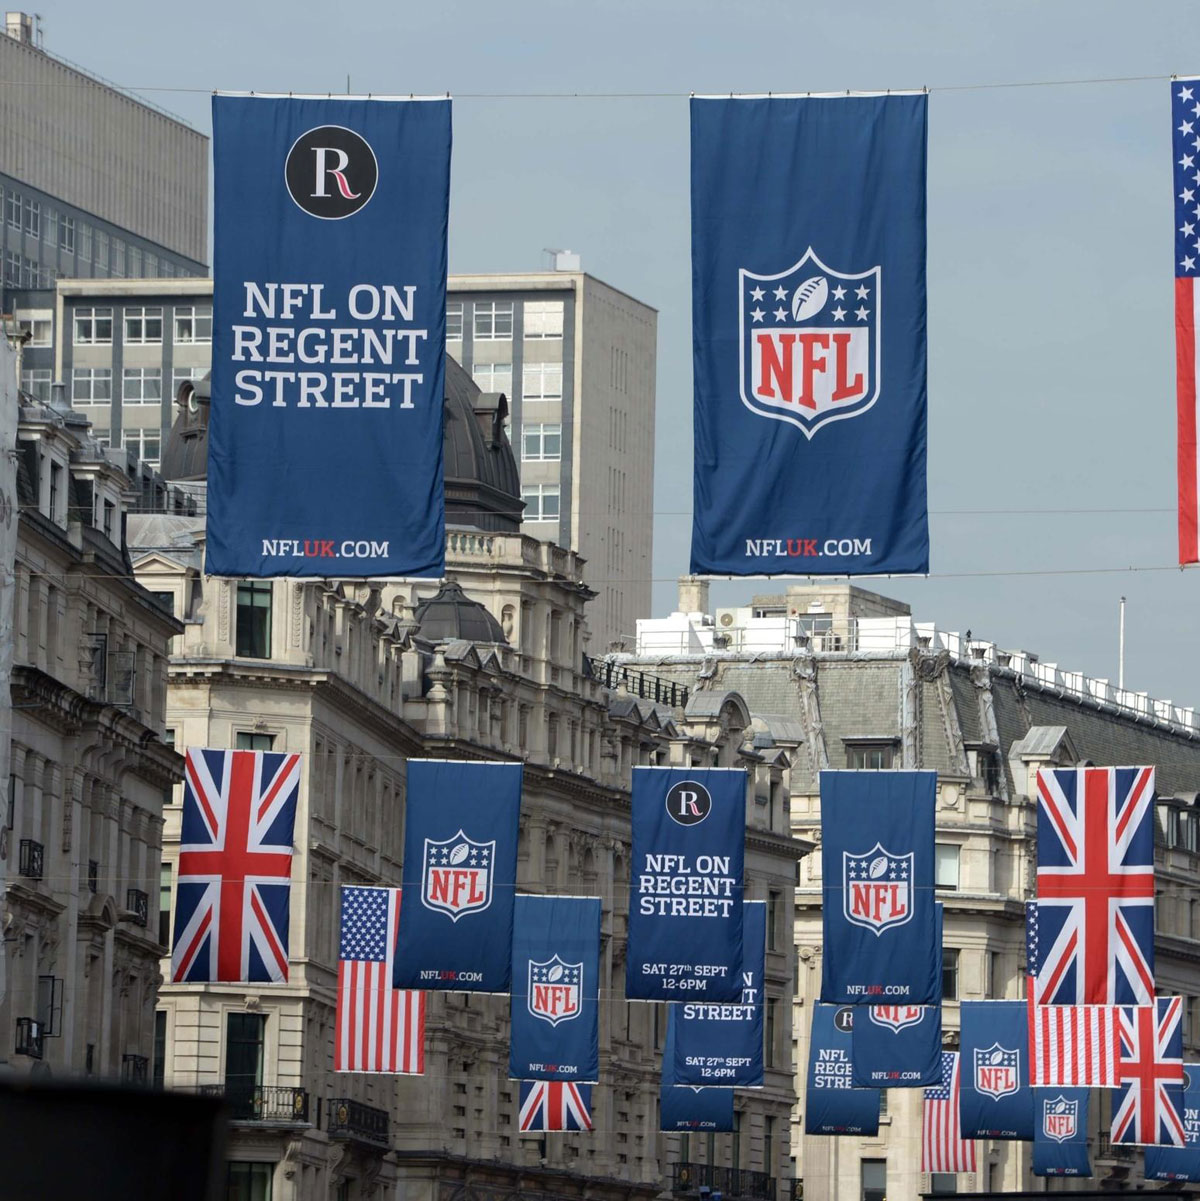 What can the English Premier League learn from NFL?